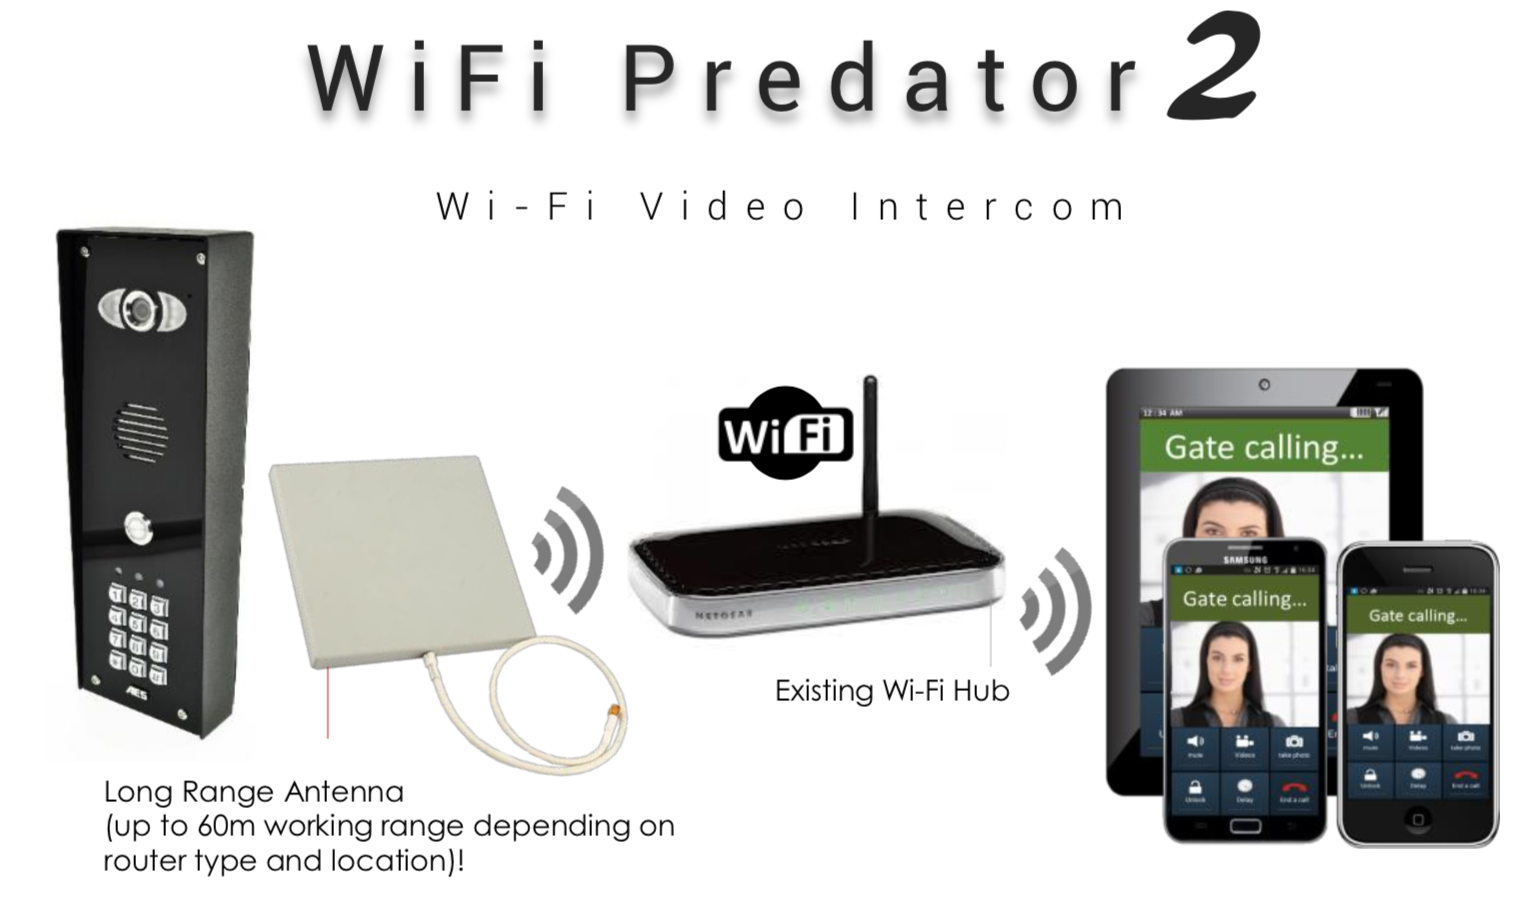 AES INTERCOM WIFI PREDATOR 2